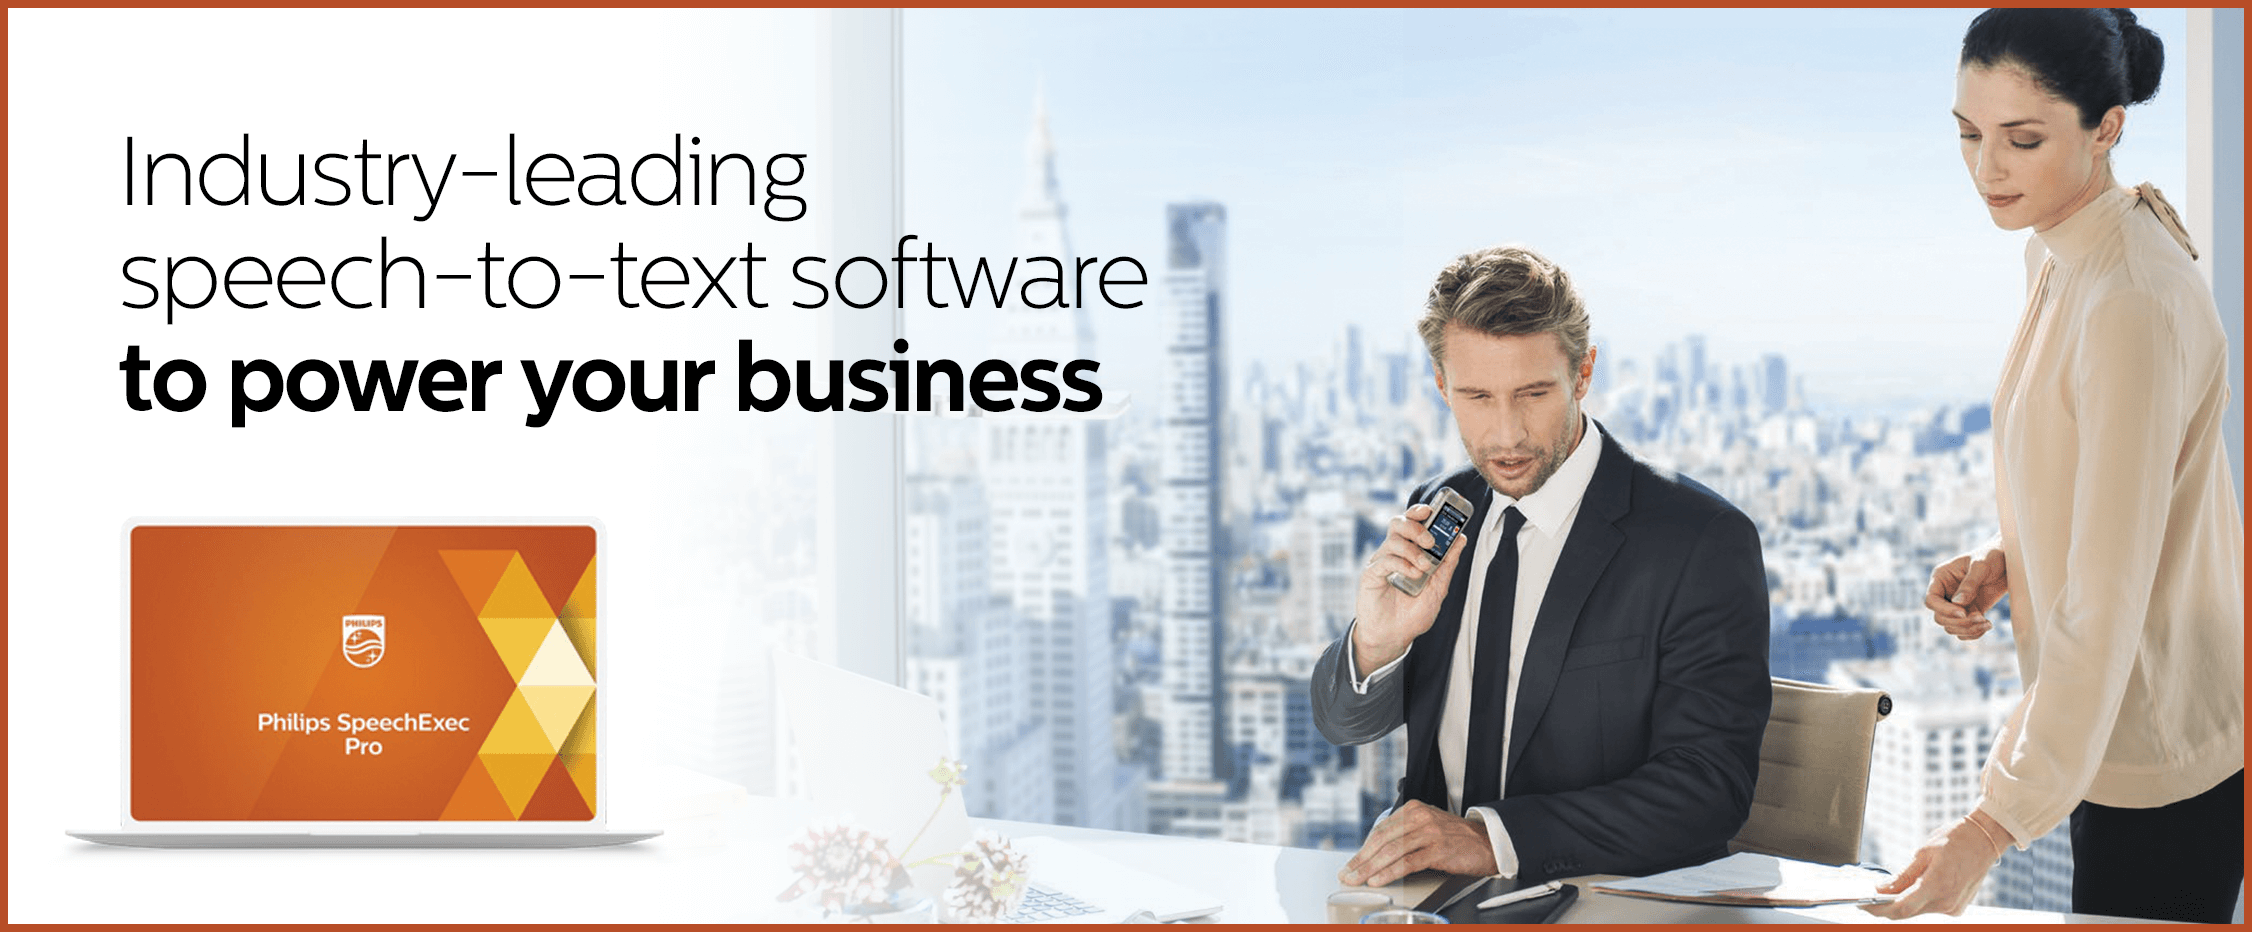 Industry-leading speech-to-text software to power your business - Philips SpeechExec Pro